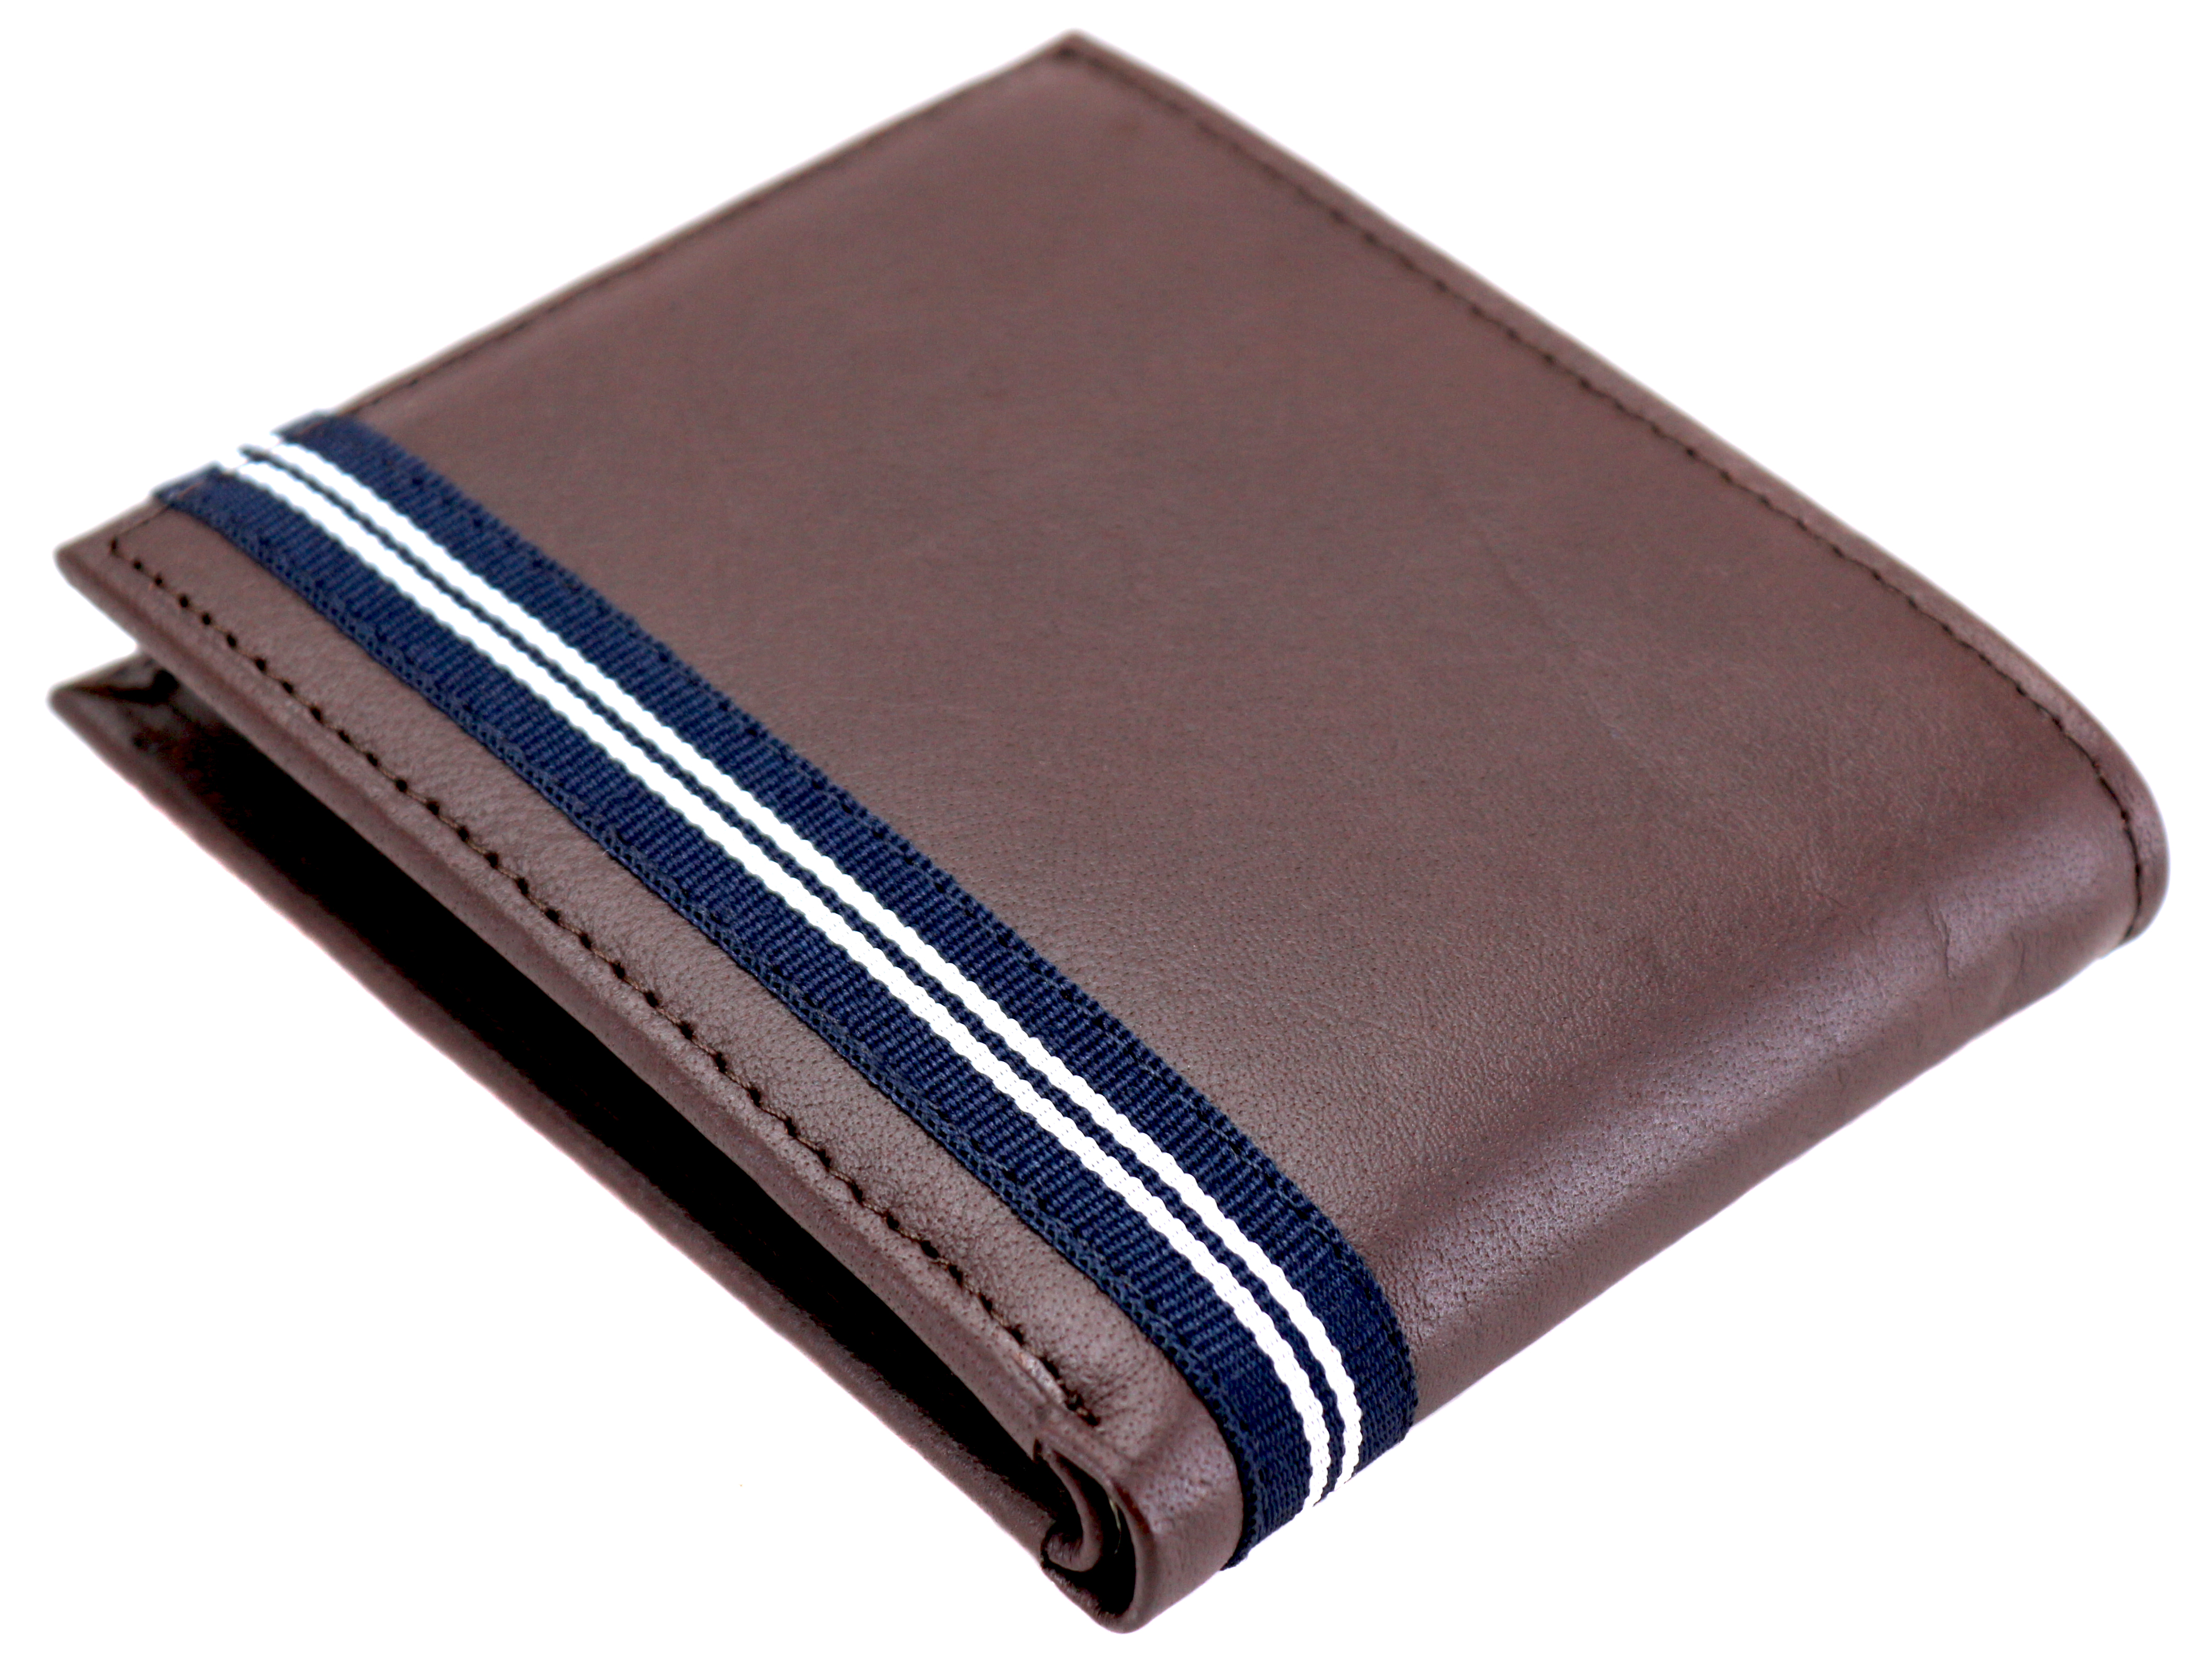 Nautica-Men-039-s-Genuine-Leather-Credit-Card-ID-Double-Billfold-Passcase-Wallet thumbnail 15